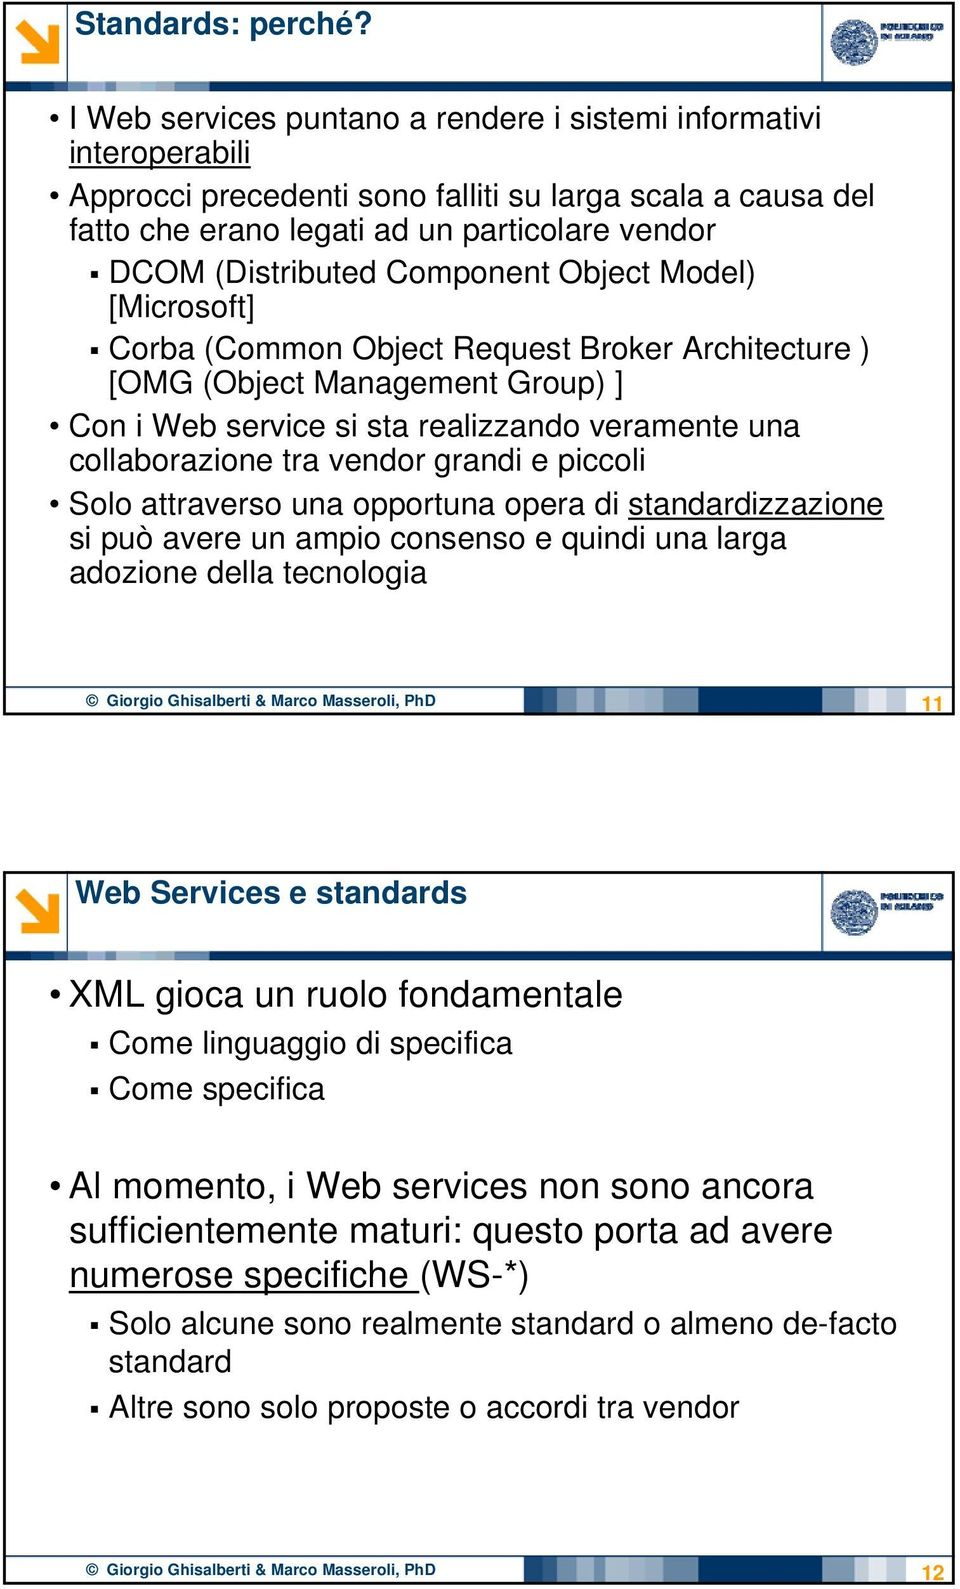 Component Object Model) [Microsoft] Corba (Common Object Request Broker Architecture ) [OMG (Object Management Group) ] Con i Web service si sta realizzando veramente una collaborazione tra vendor